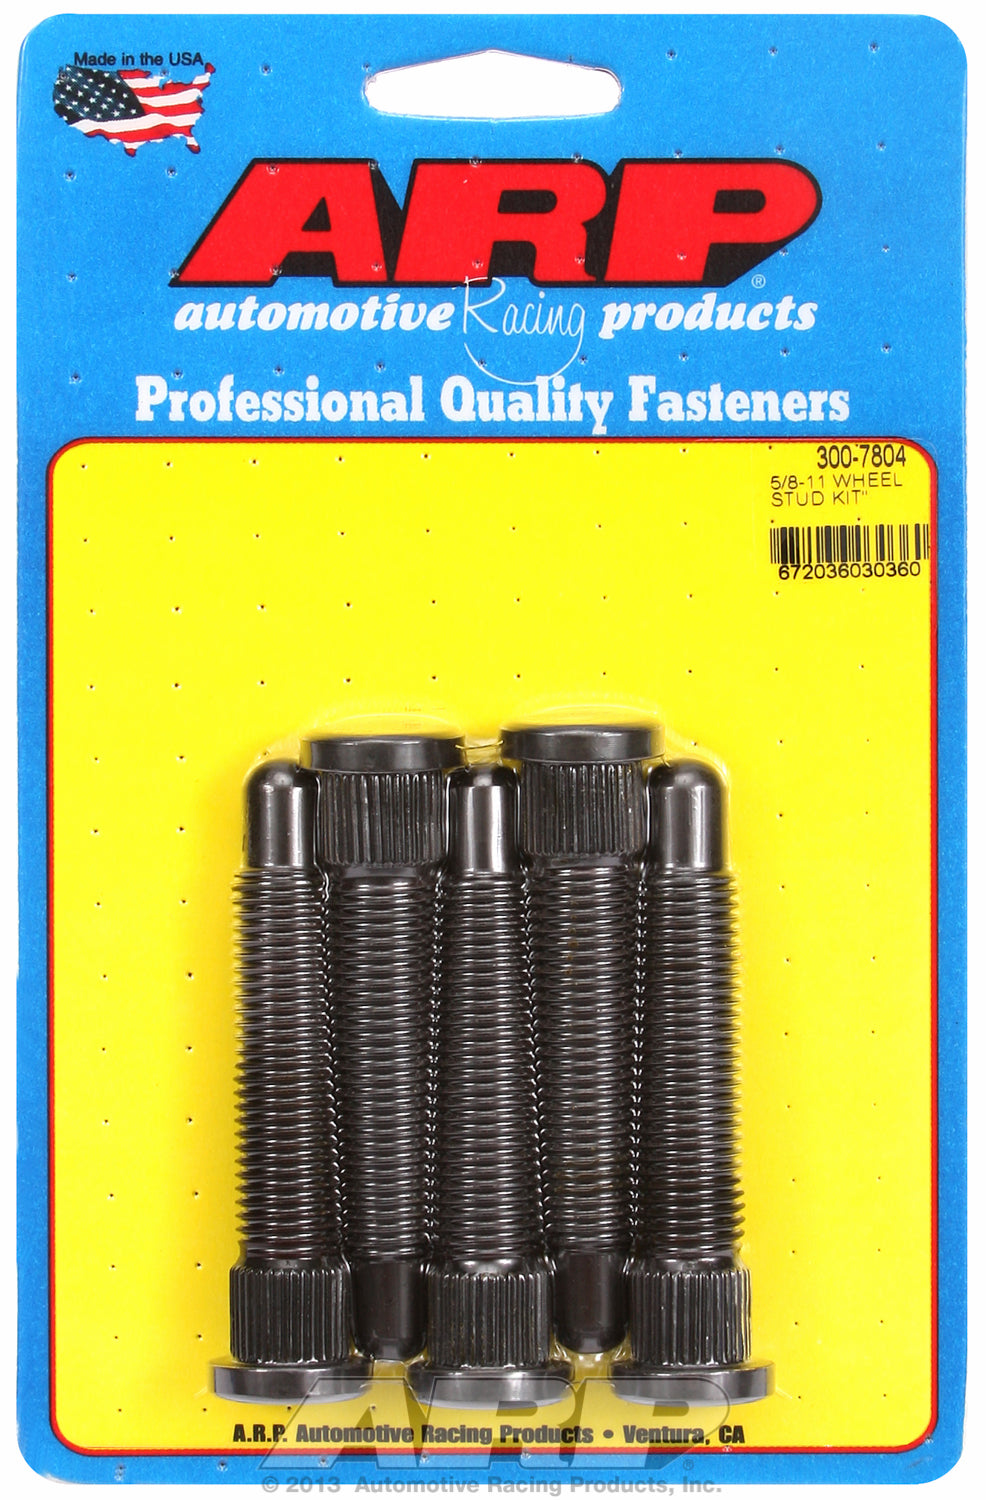 5/8-11 x 4.031 wheel stud kit